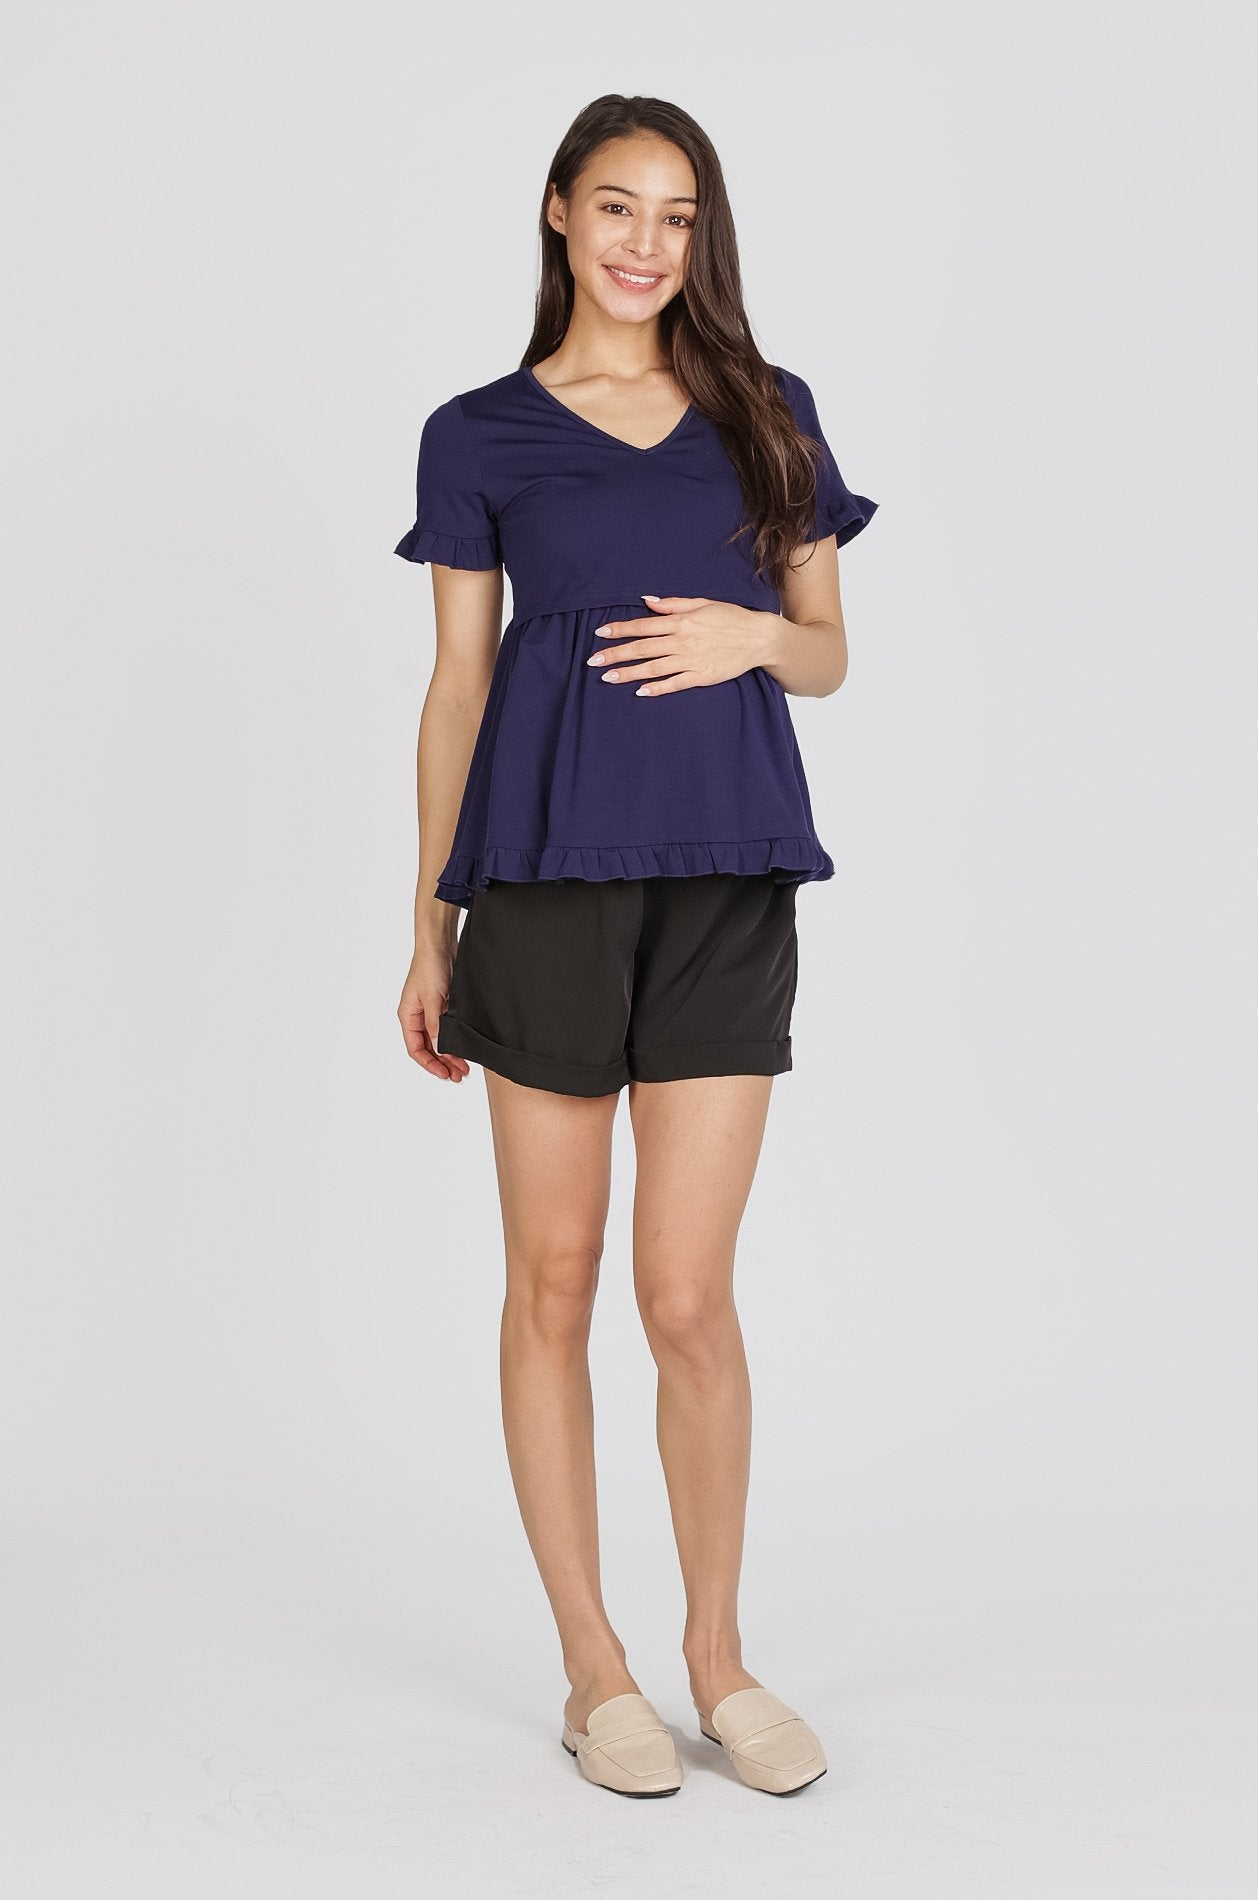 Reika Maternity Shorts In Black Nursing Wear Jump Eat Cry